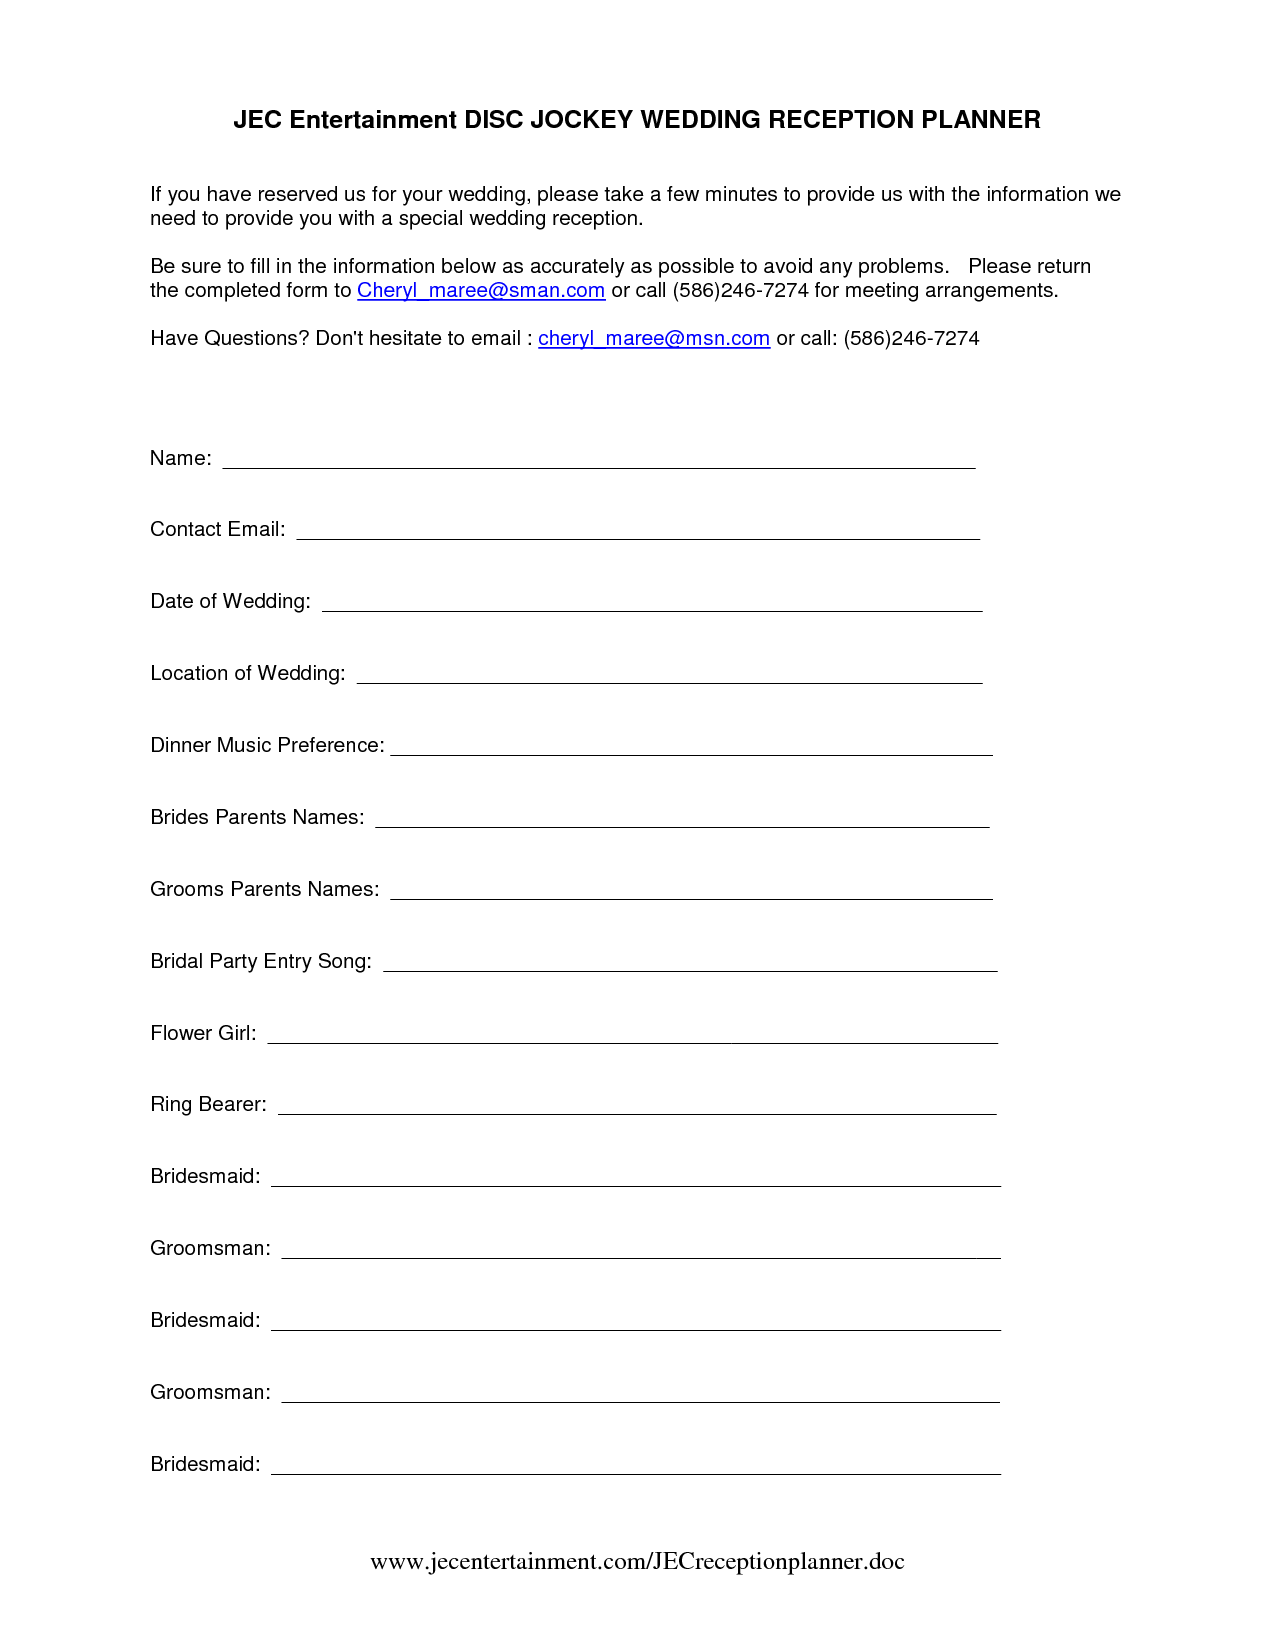 Dj Wedding Planner Form